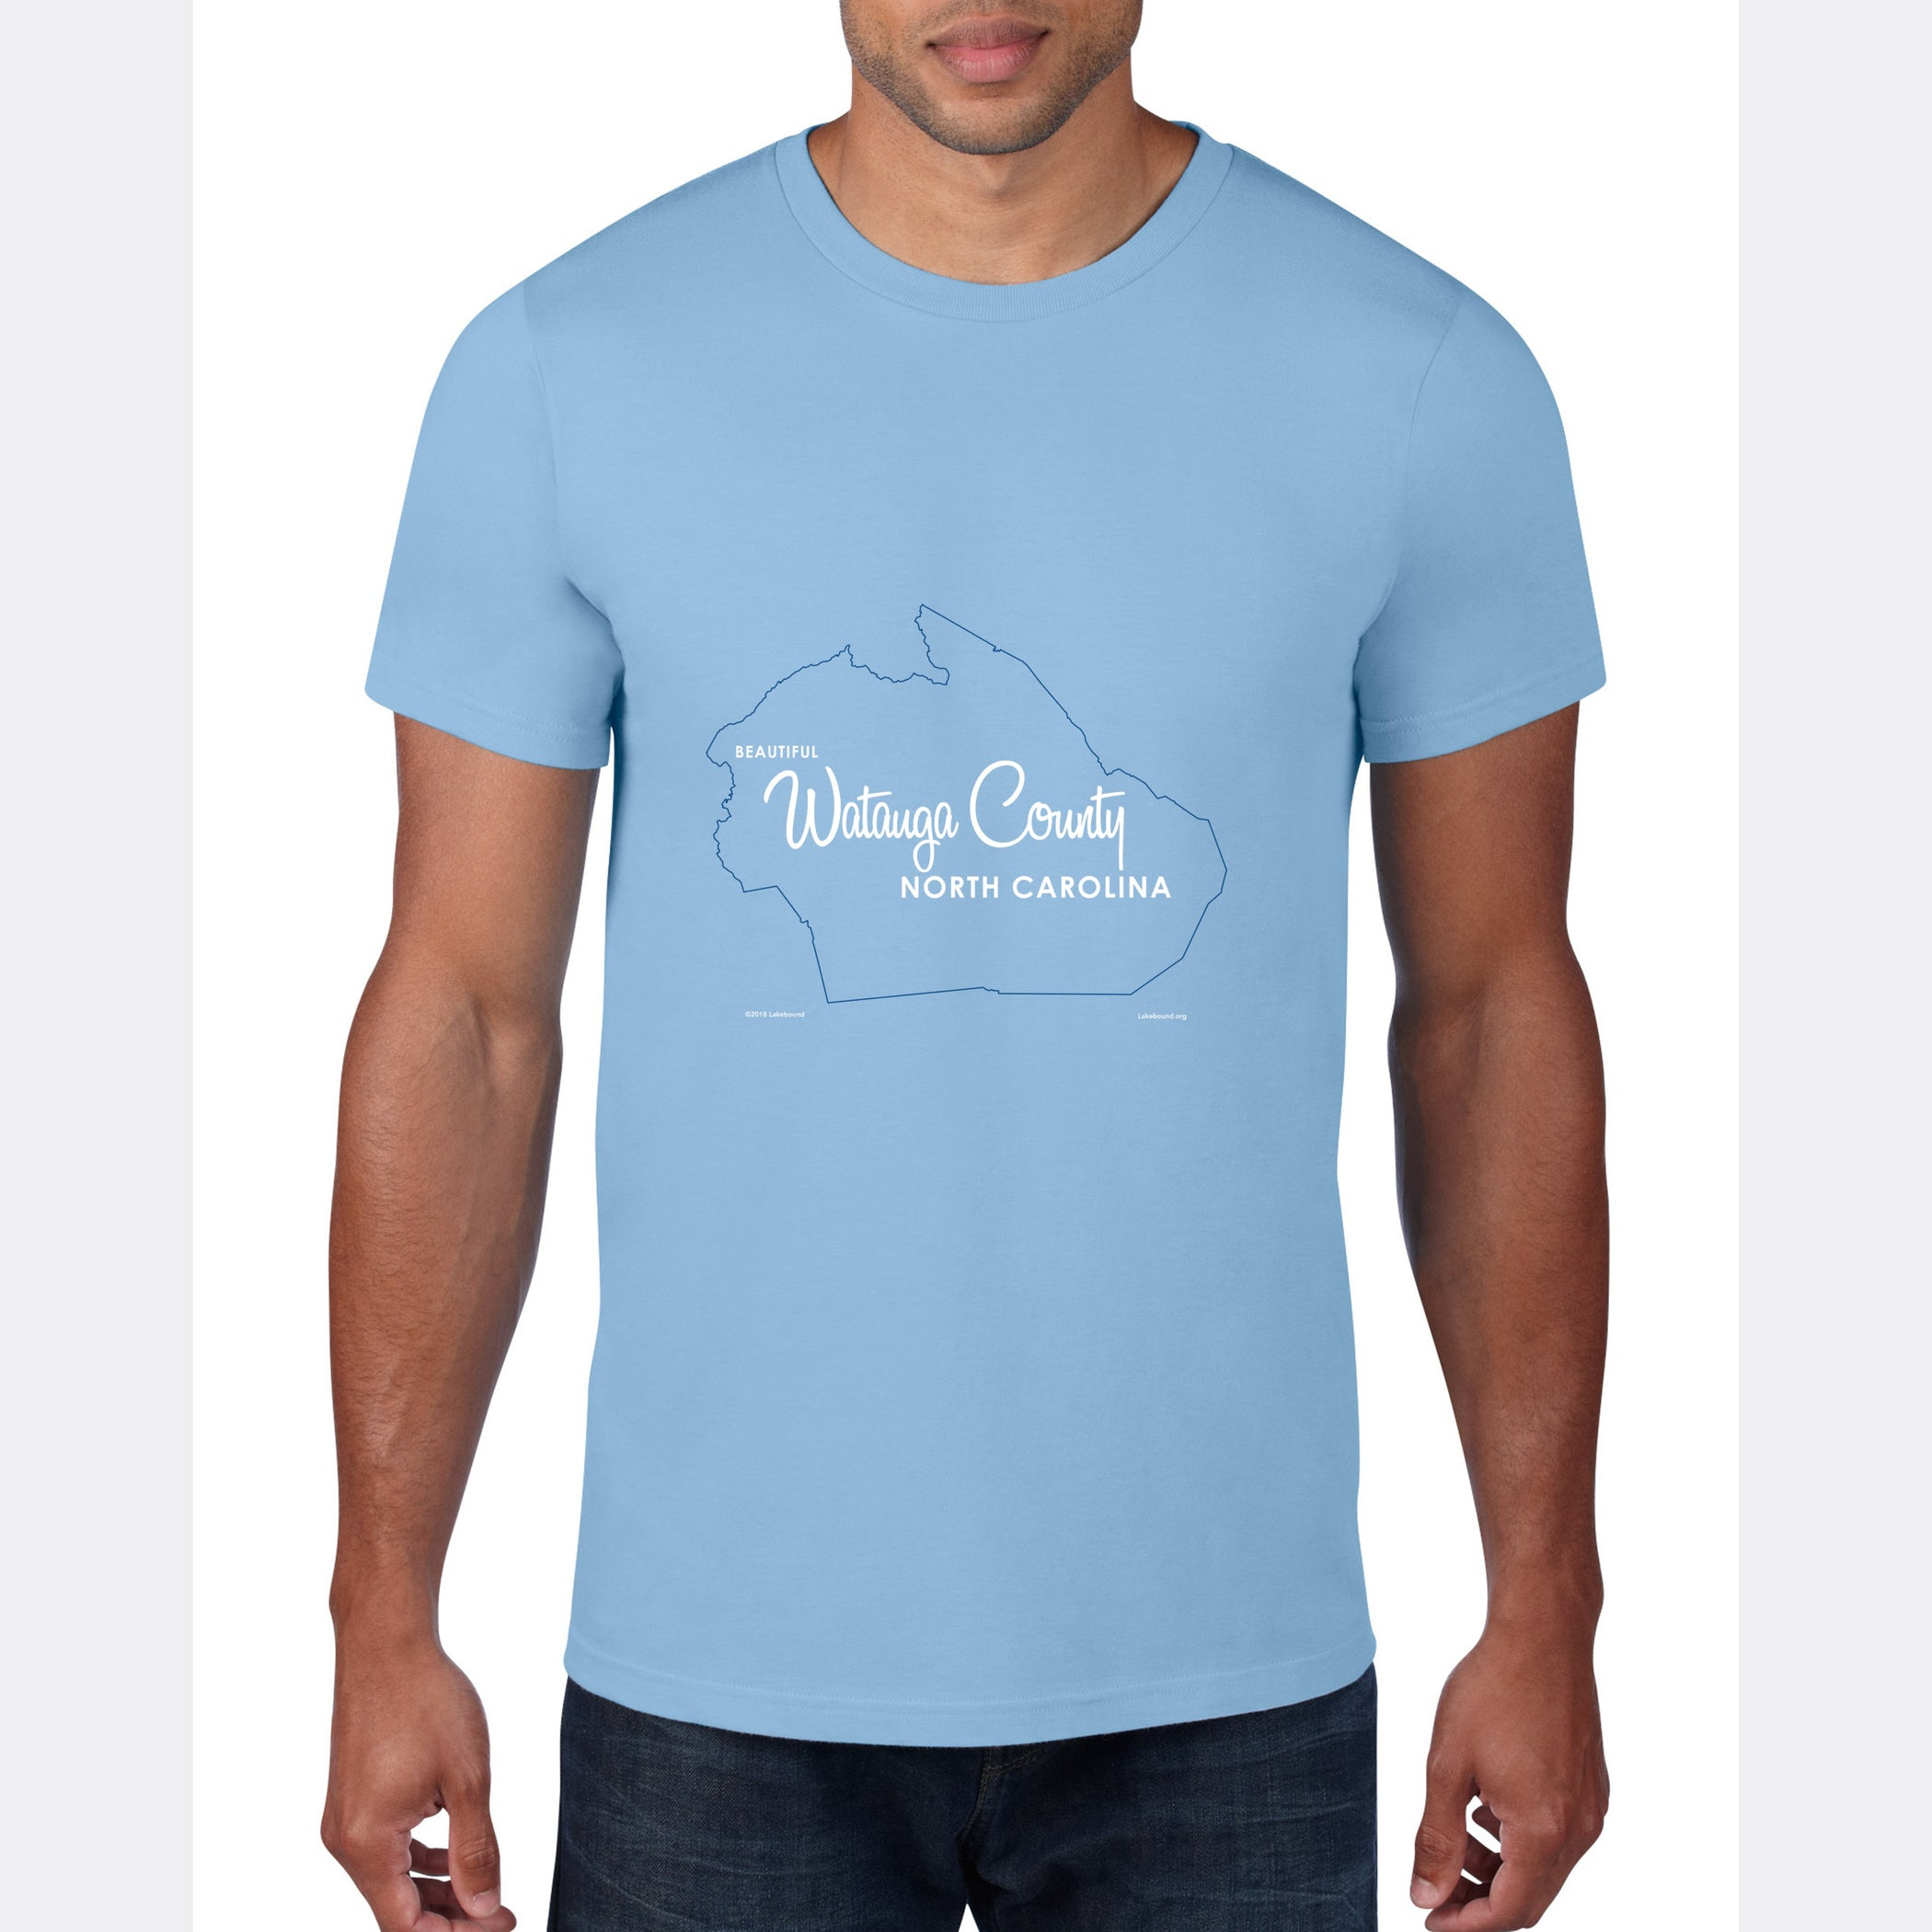 Watauga County North Carolina, T-Shirt